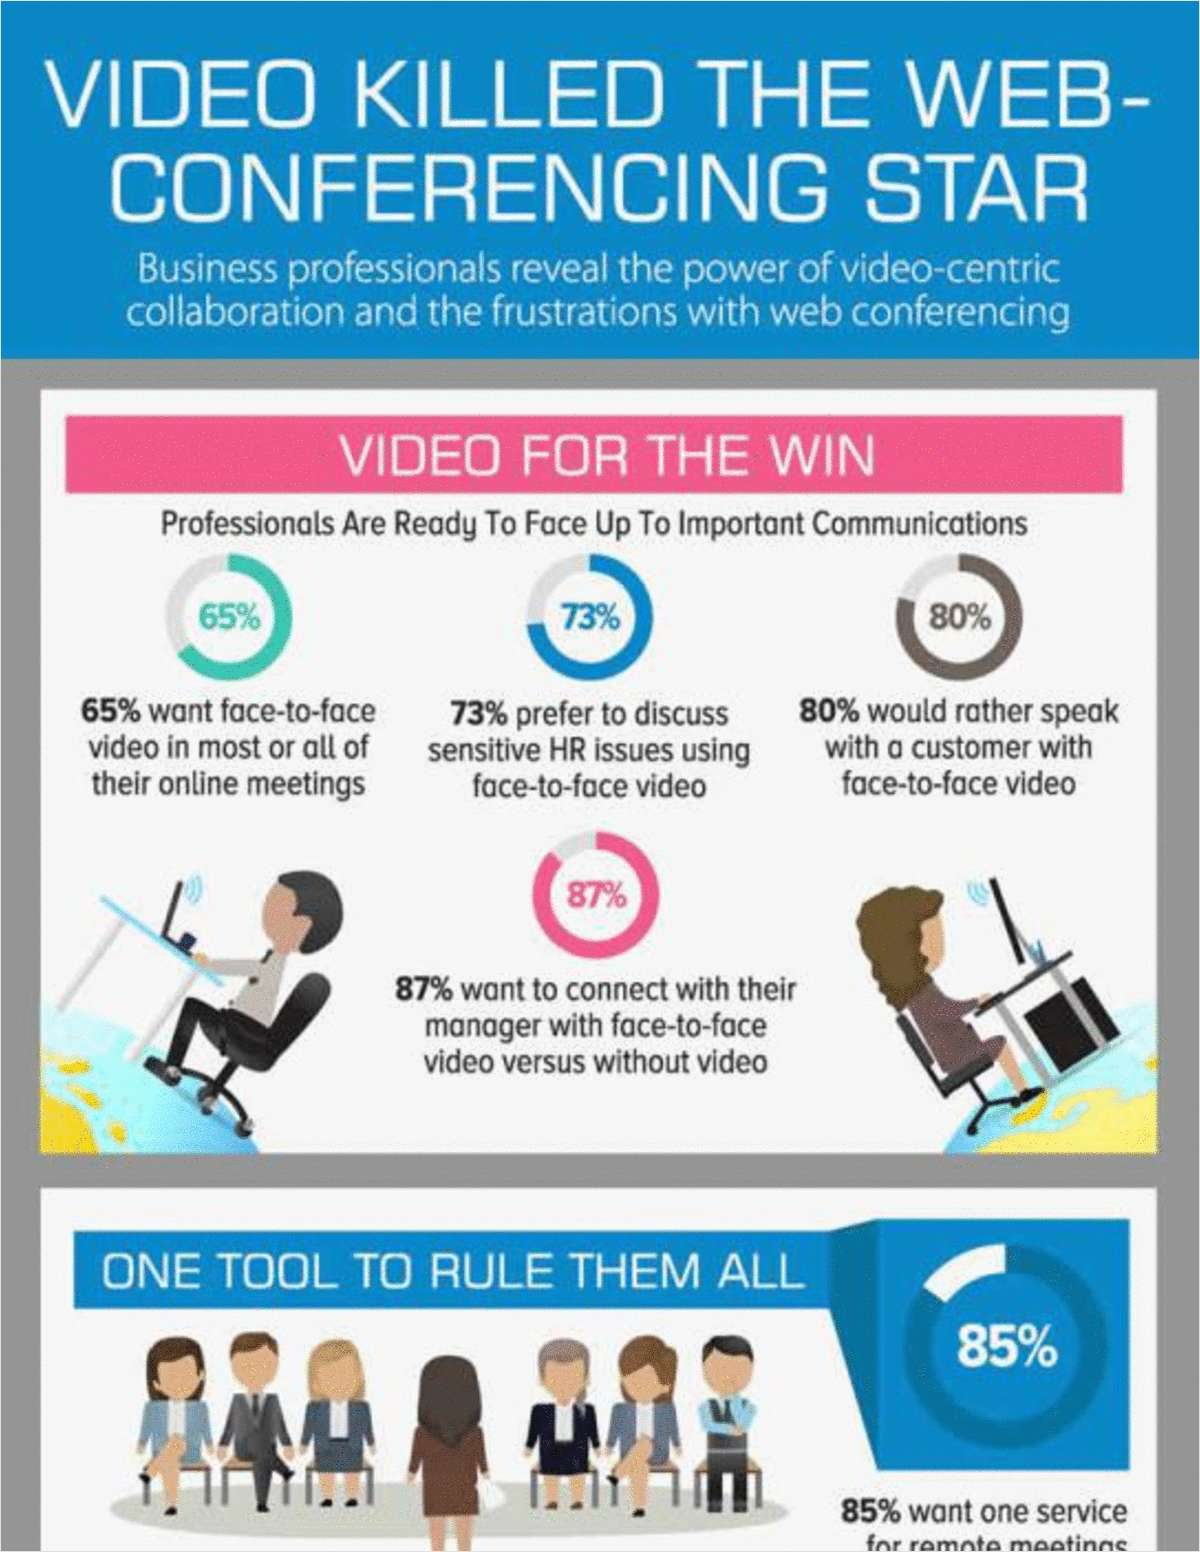 Video Killed The Web-Conferencing Star